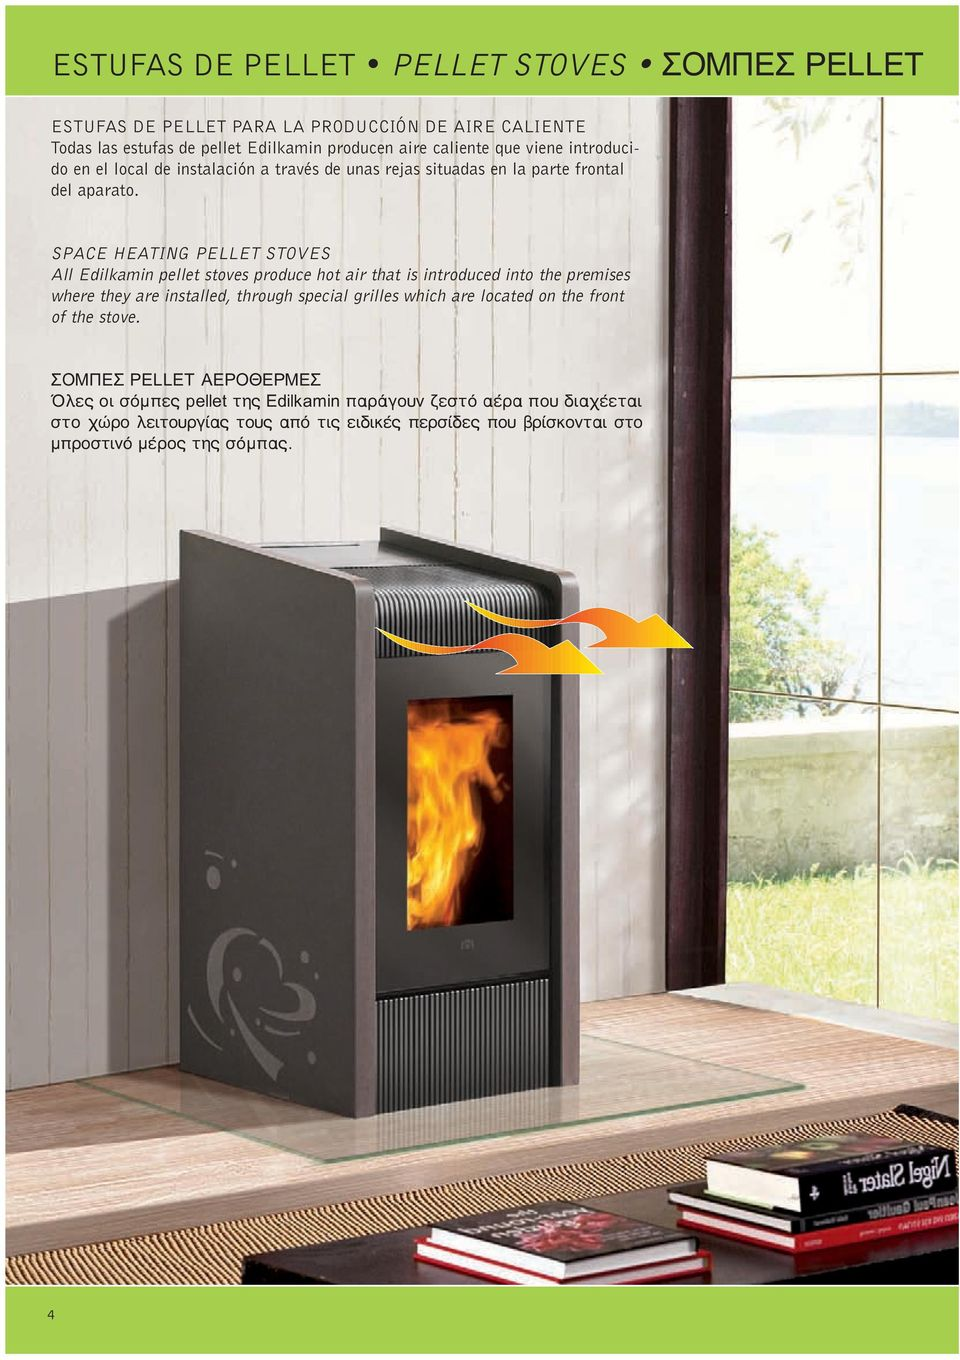 SPACE HEATING PELLET STOVES All Edilkamin pellet stoves produce hot air that is introduced into the premises where they are installed, through special grilles which